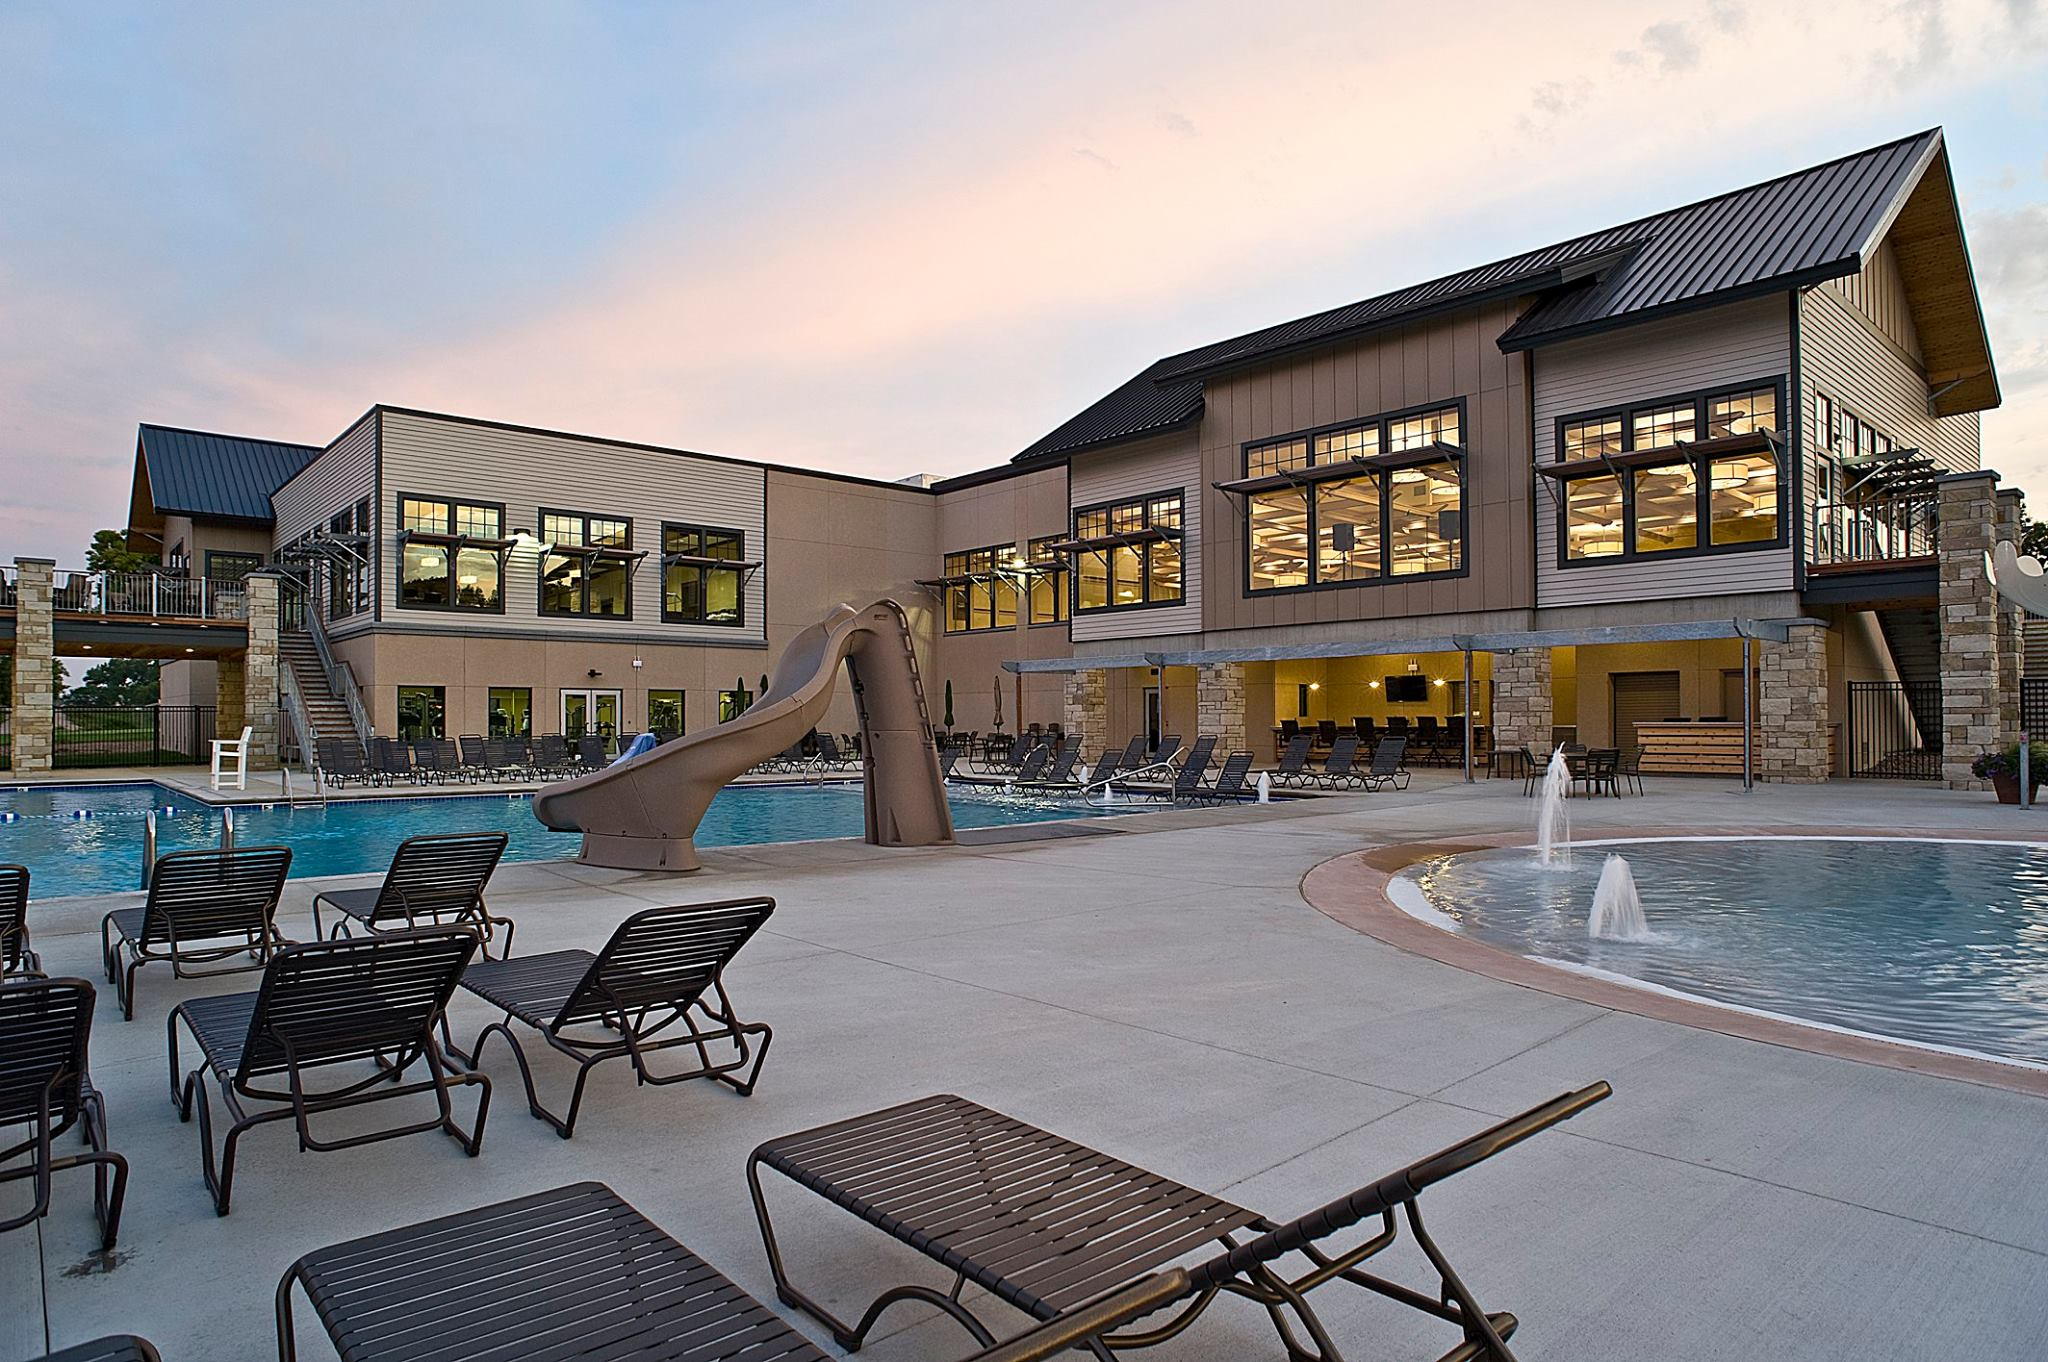 The Country Club of Sioux Falls pool South Dakota